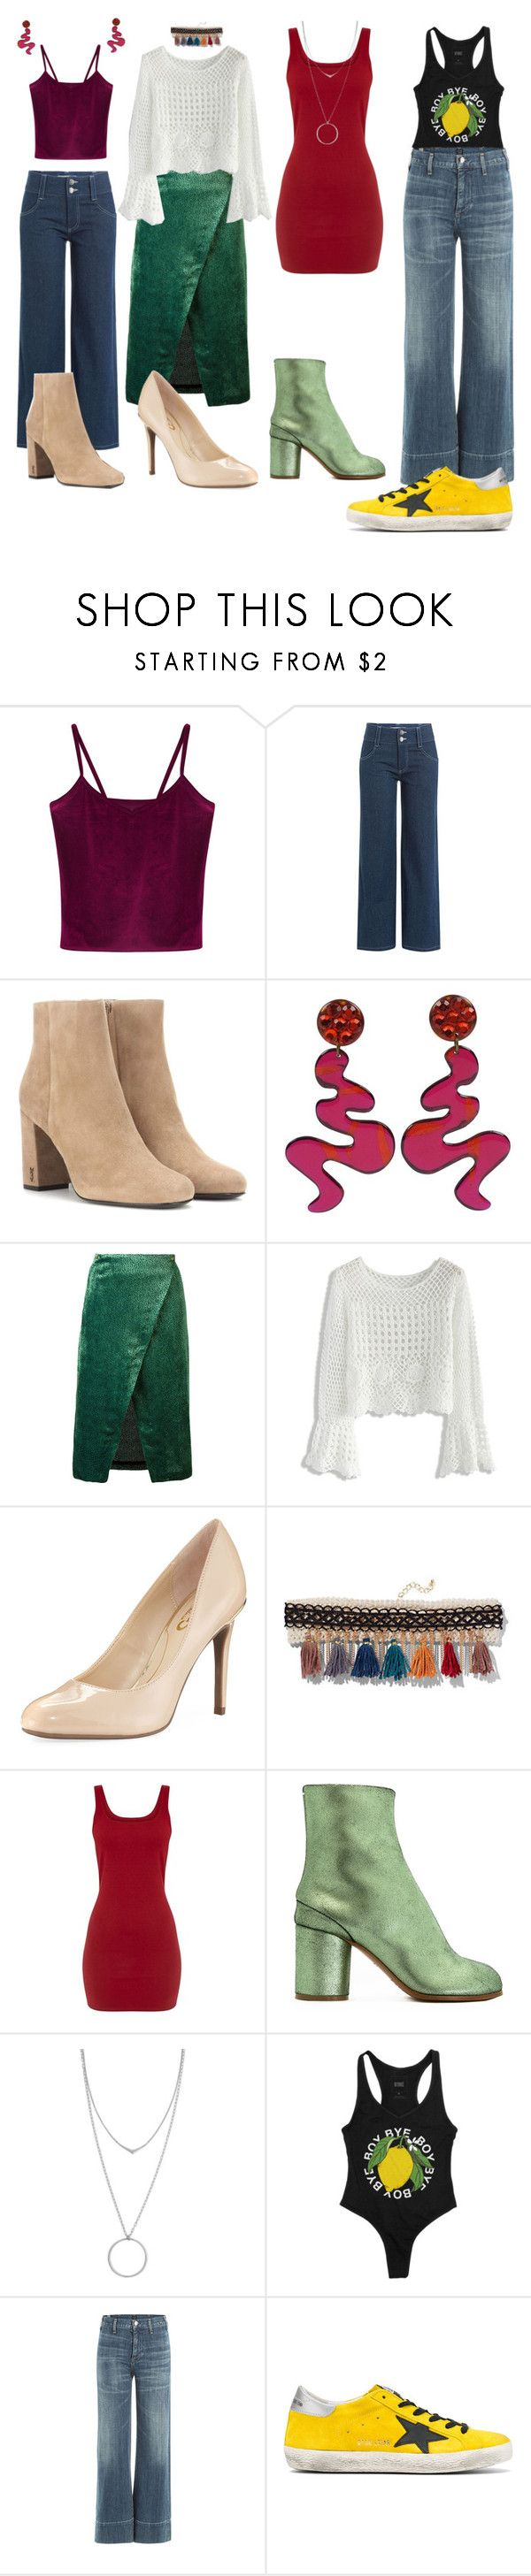 """spice girls - wannabe"" by starringsky ❤ liked on Polyvore featuring WithChic, Sandy Liang, Yves Saint Laurent, Roseanna, Chicwish, Circus by Sam Edelman, New York & Company, Maison Margiela, Botkier and Citizens of Humanity"